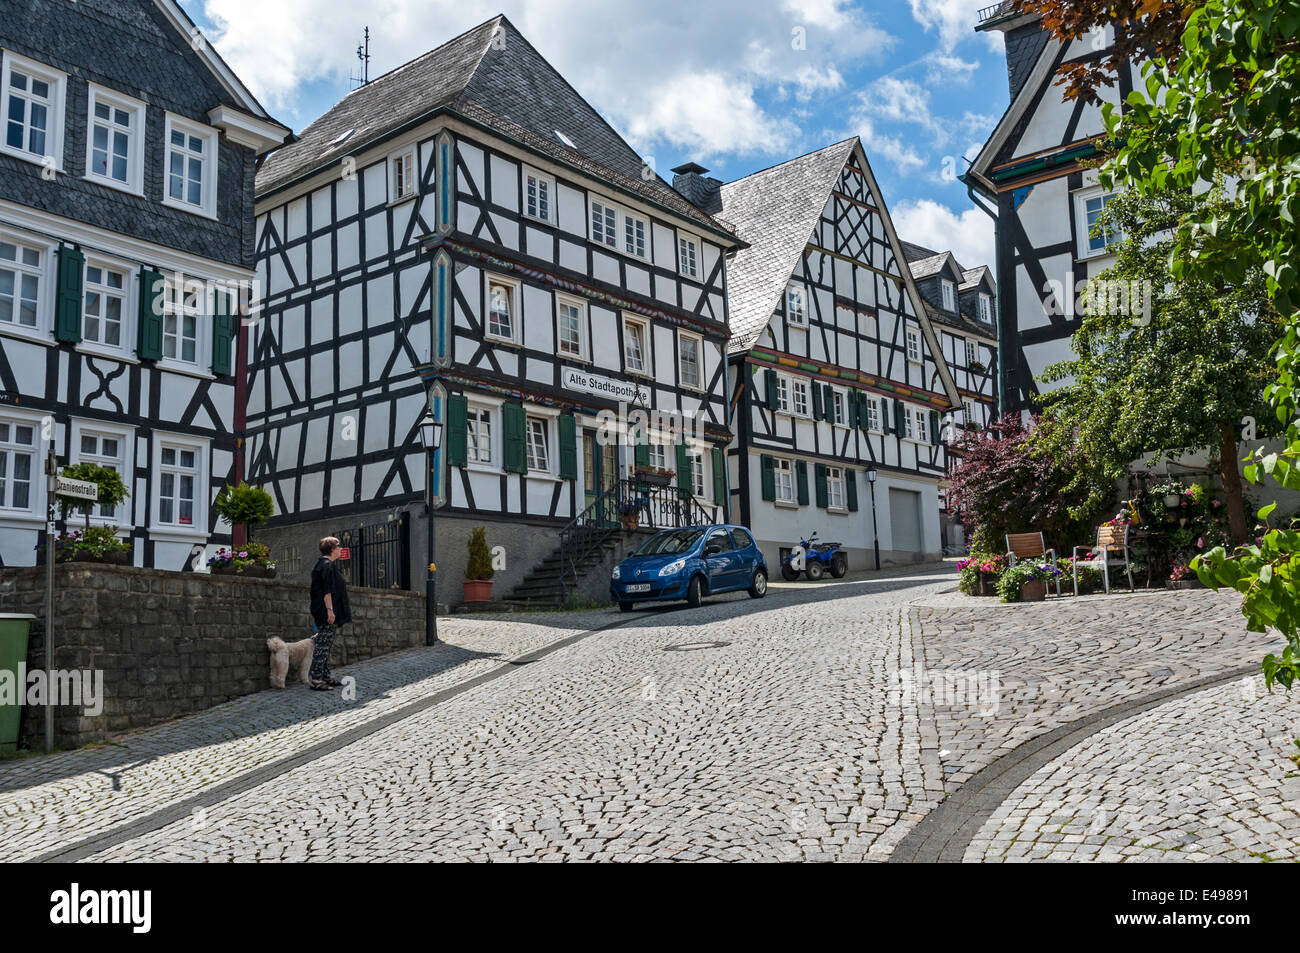 Freudenberg, houses in the old town, NRW Germany - Stock Image